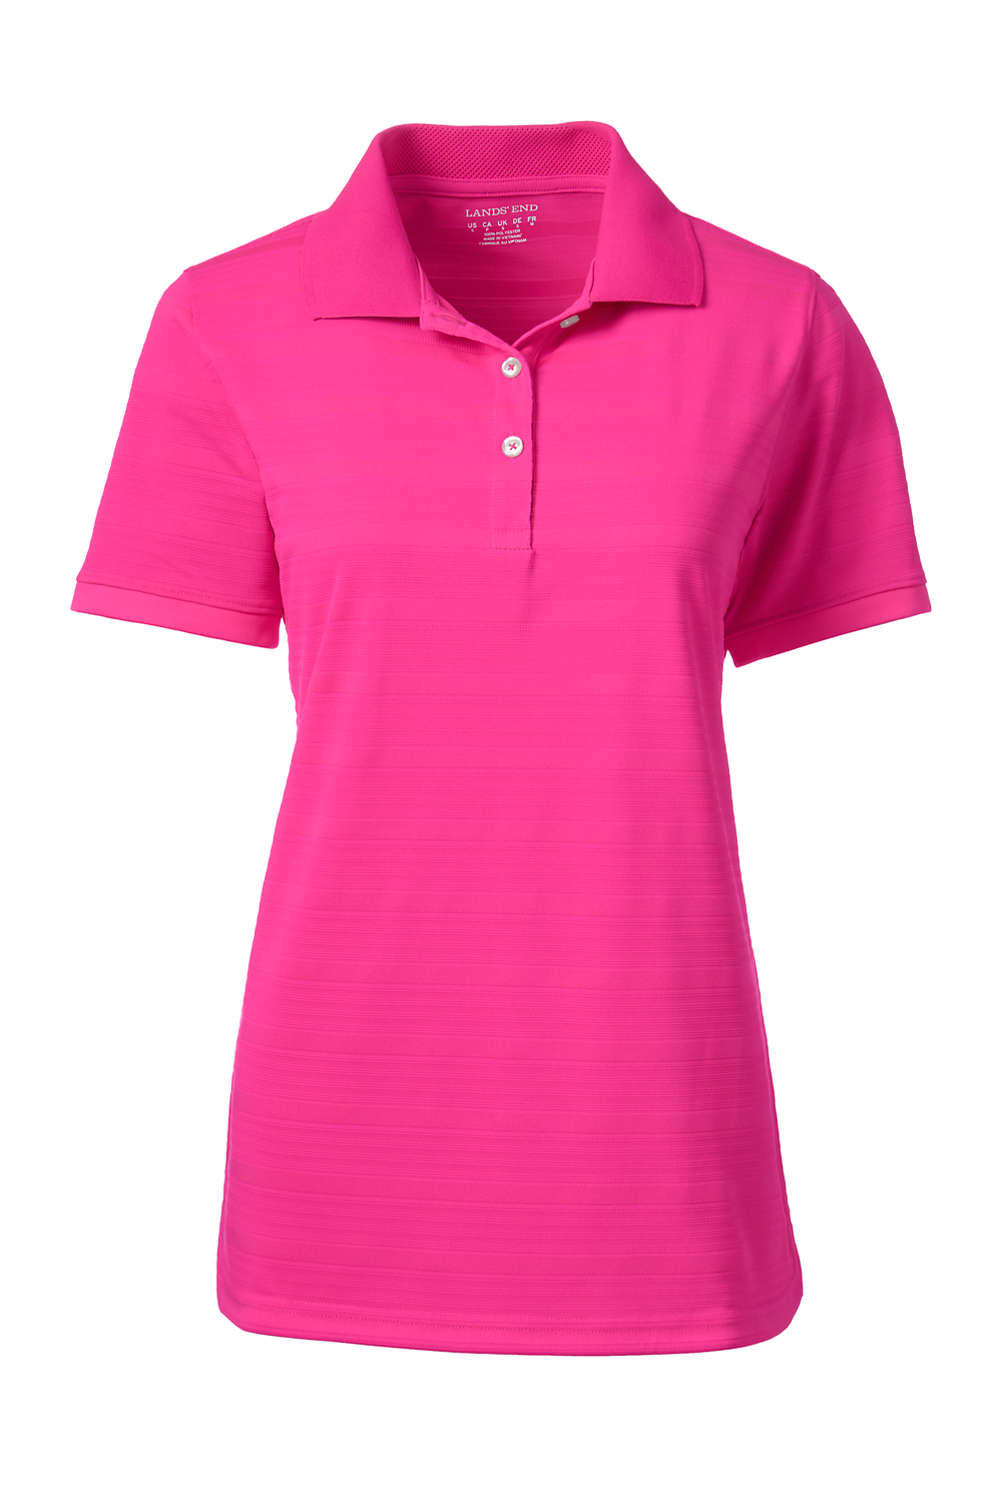 Womens Rapid Dri Drop Needle Polo Shirt From Lands End